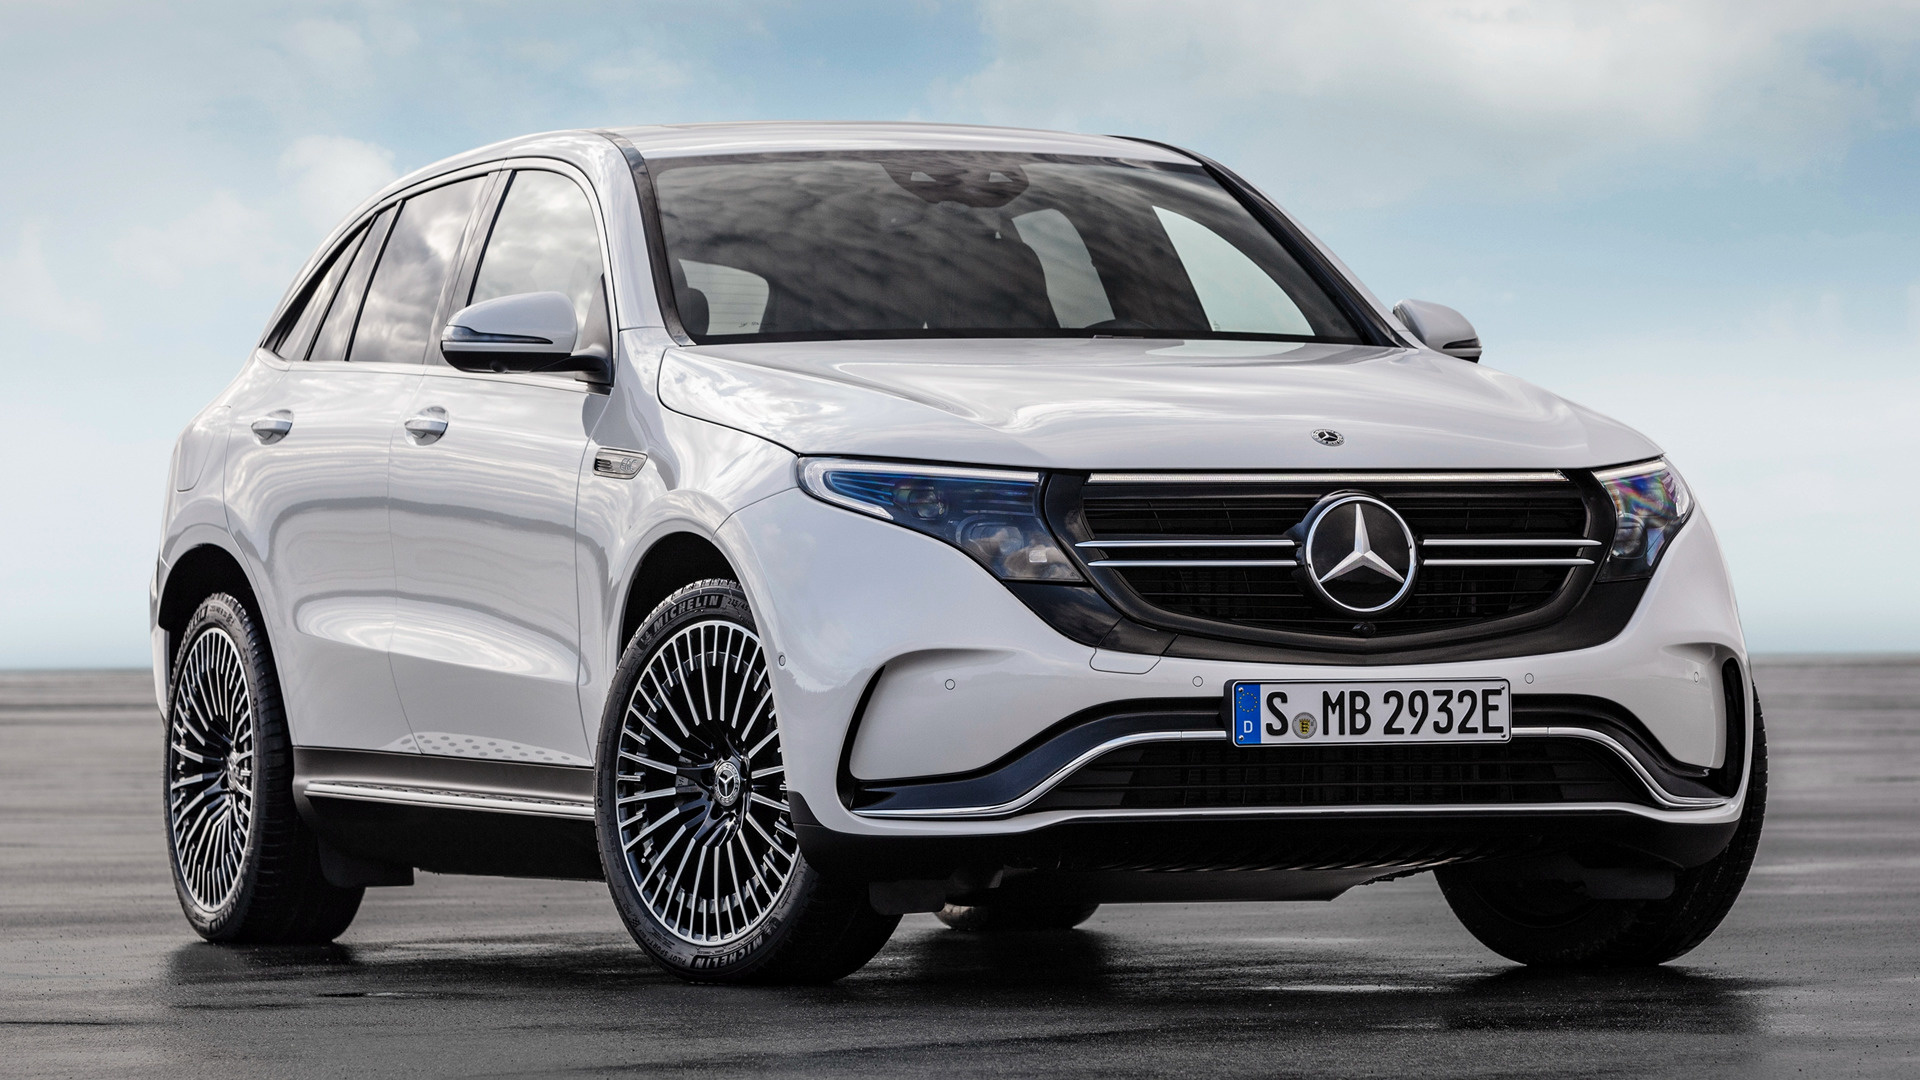 2019 Mercedes Benz EQC AMG Line   Wallpapers and HD Images Car Pixel 1920x1080